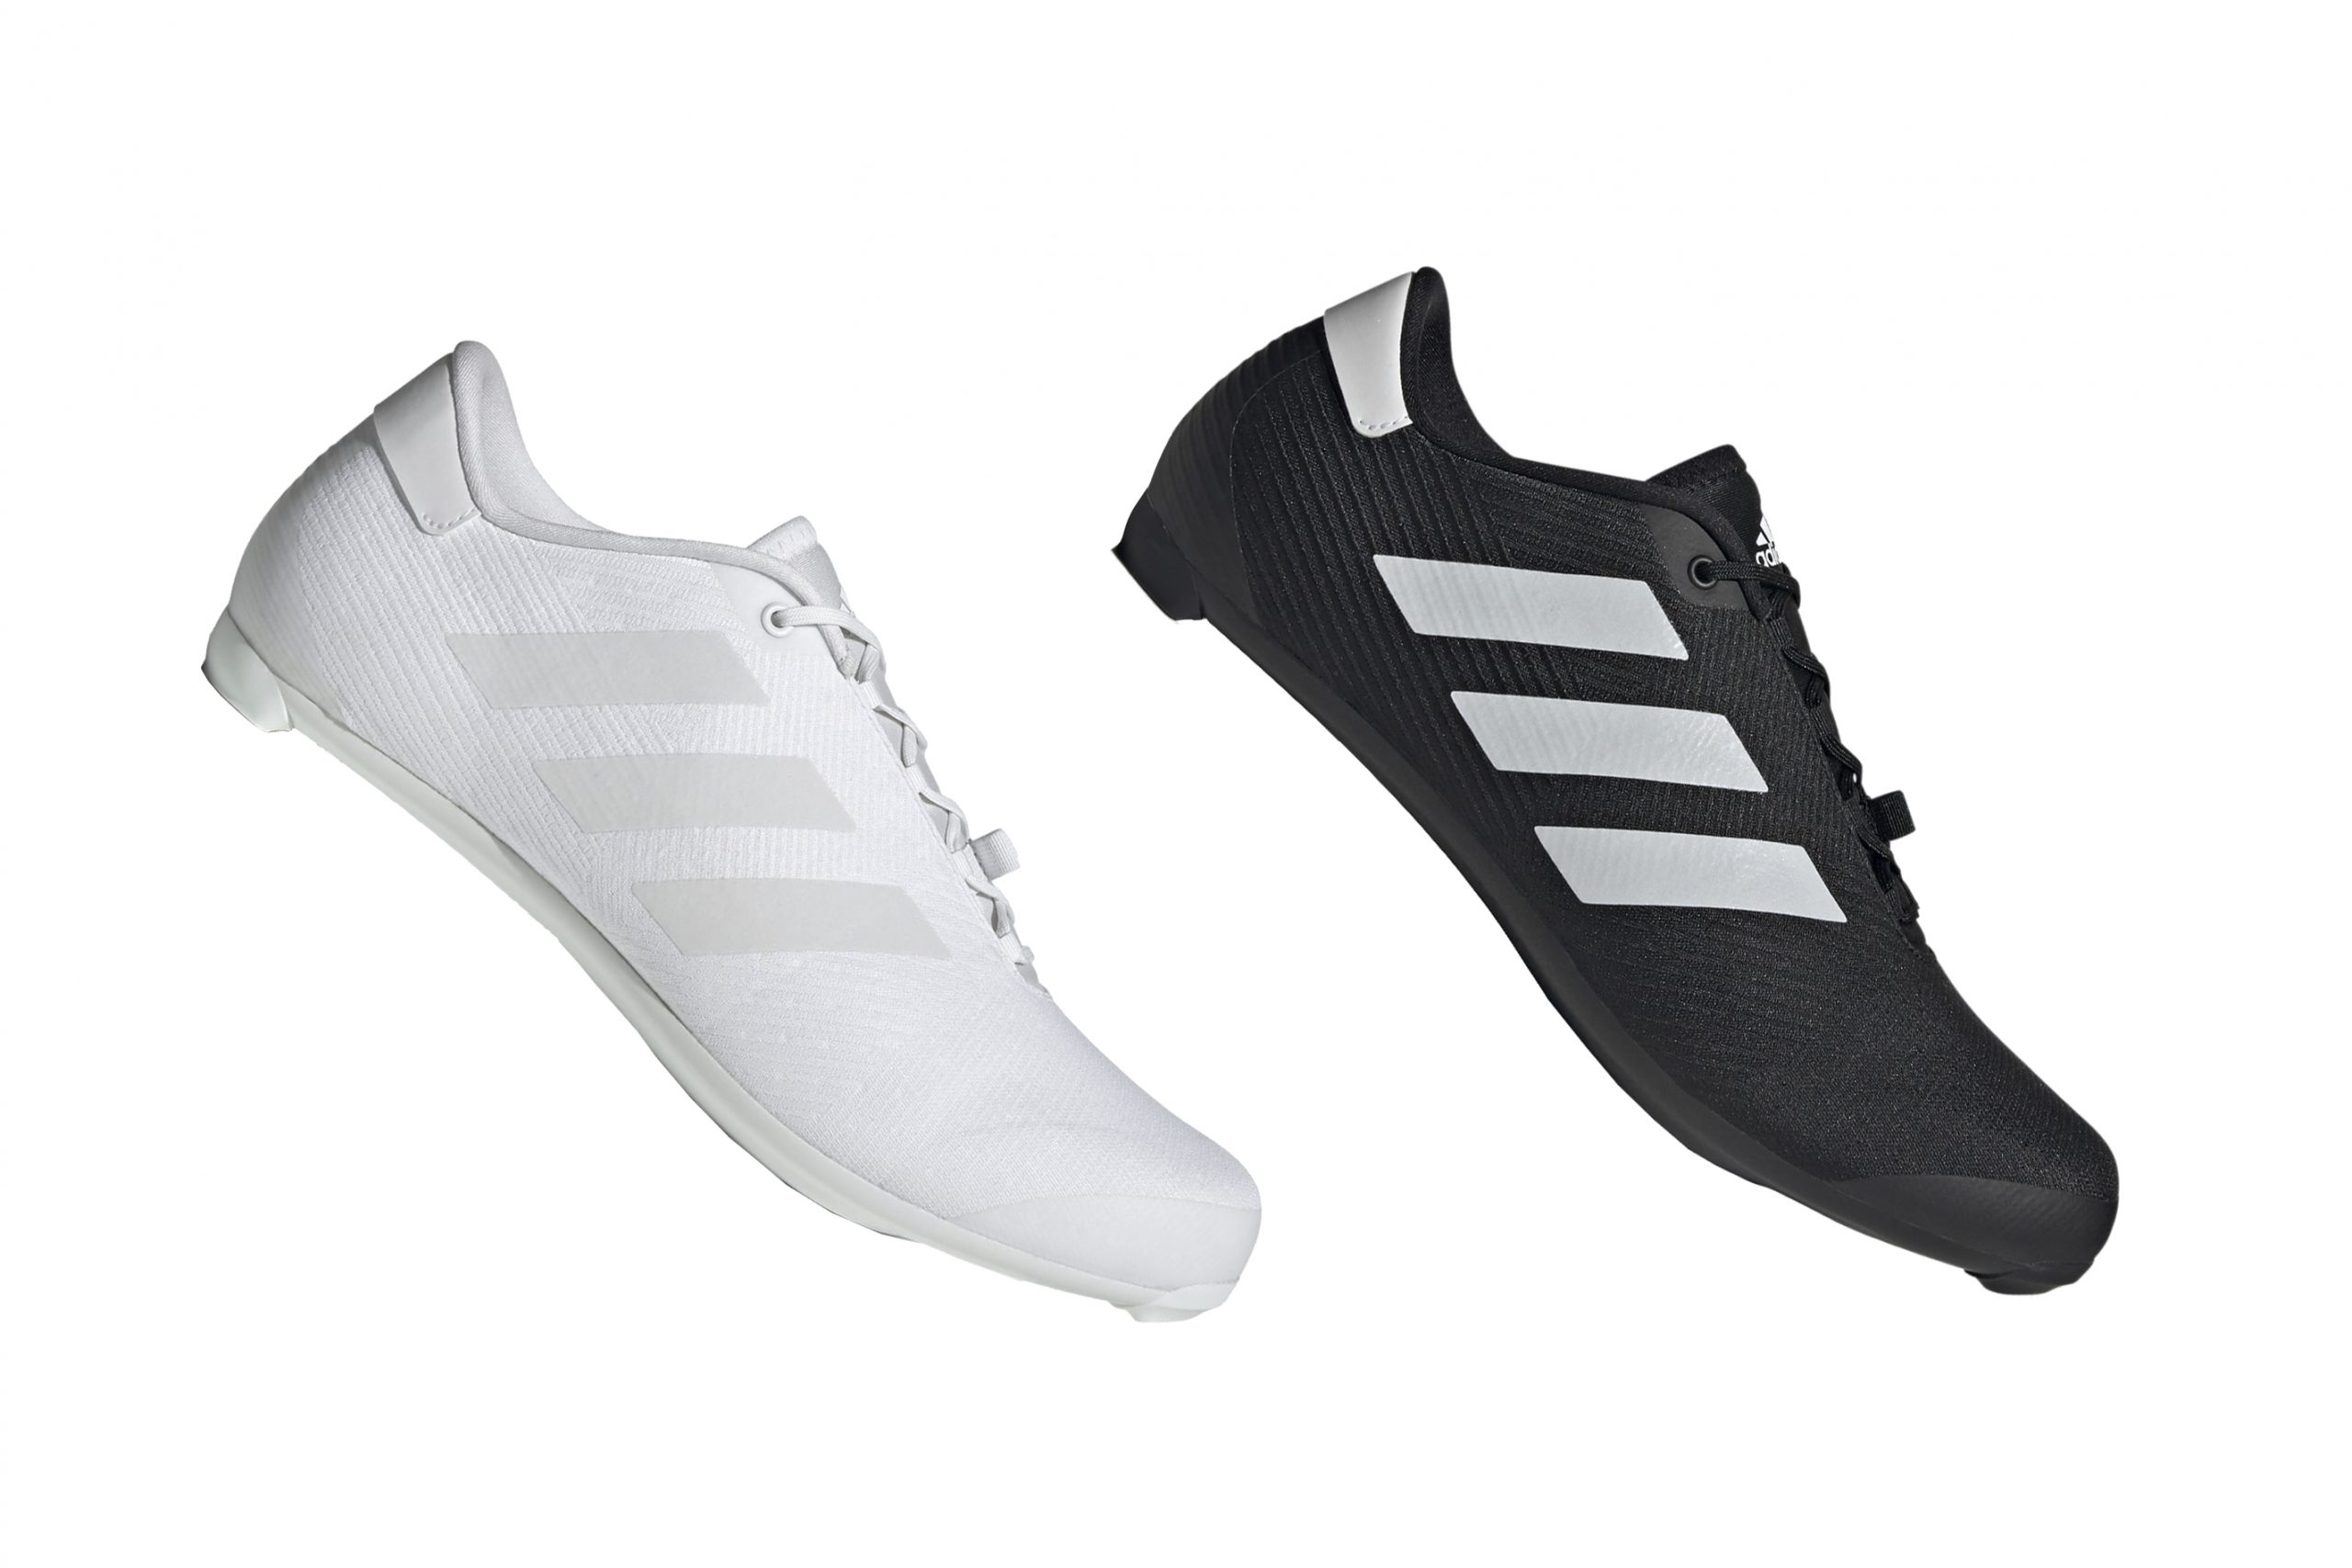 """Adidas Returns to Cycling With """"the Road"""" Shoes and More 